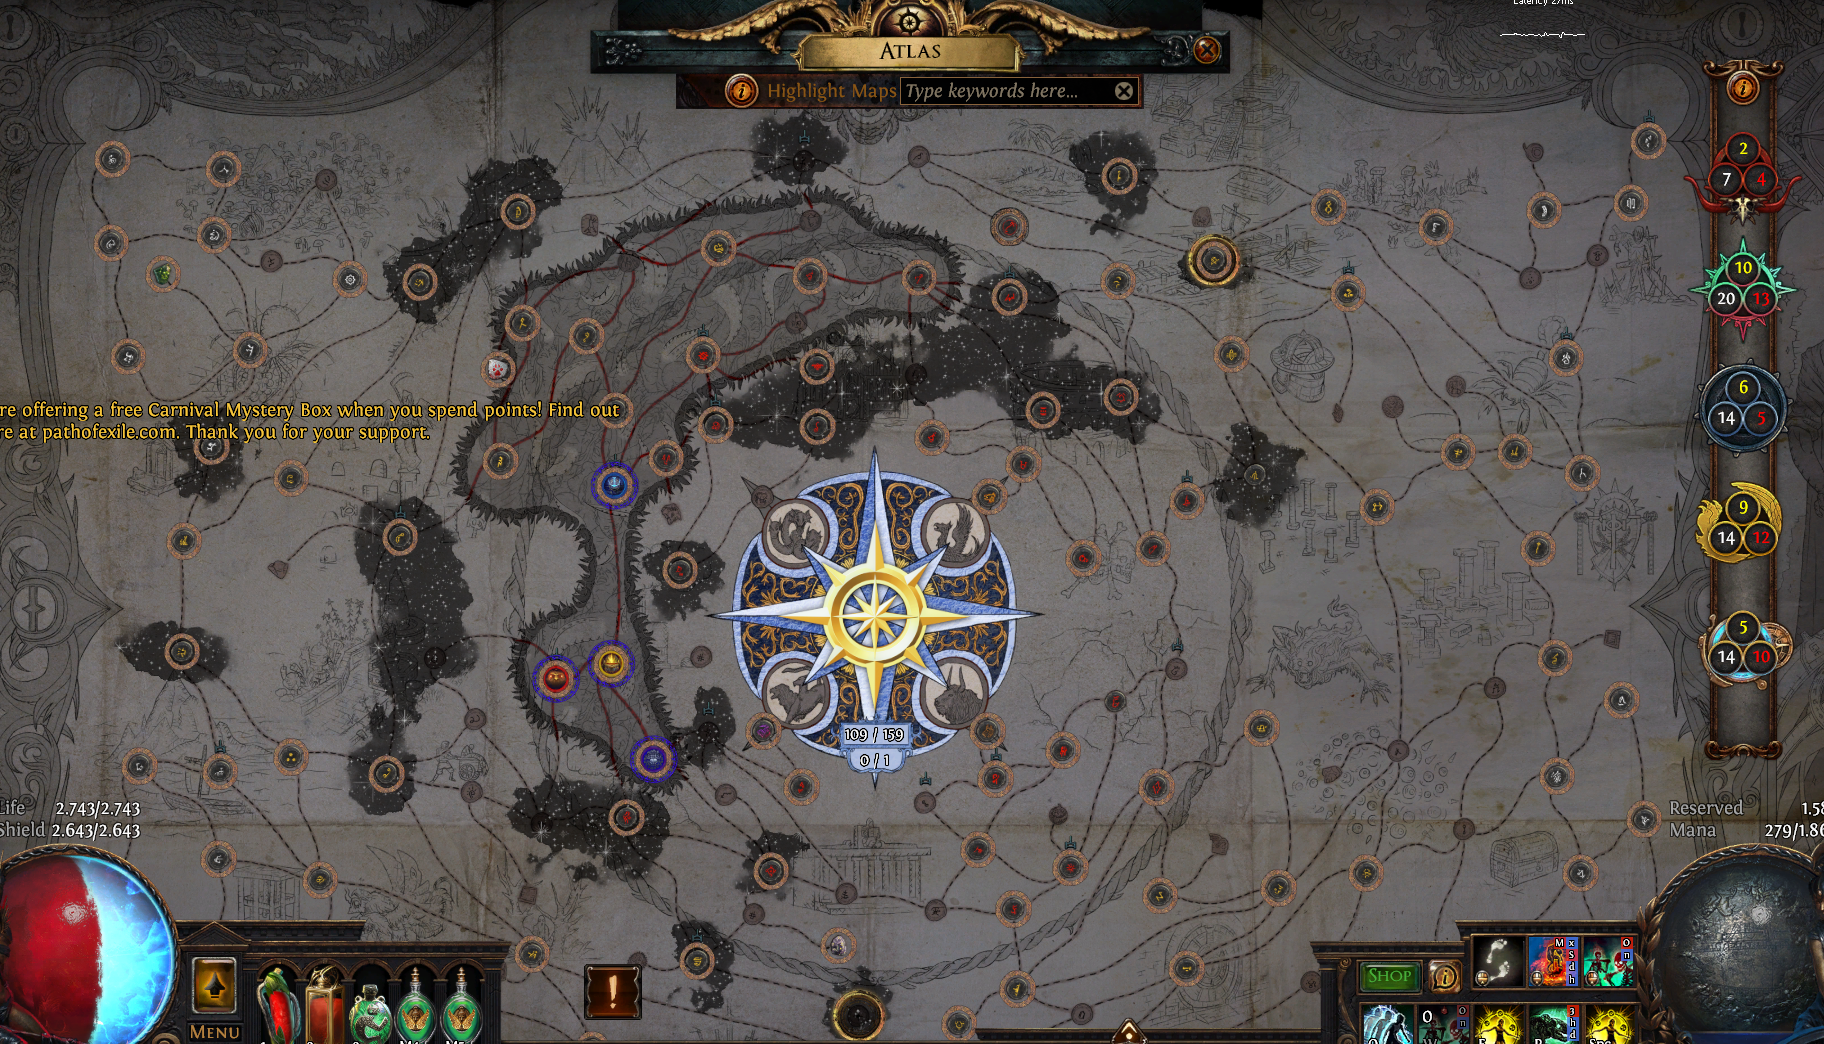 Poe Exalted Orb Farming Guide Poe Exalted Orb Is Often A Currency By Franksflynn Medium